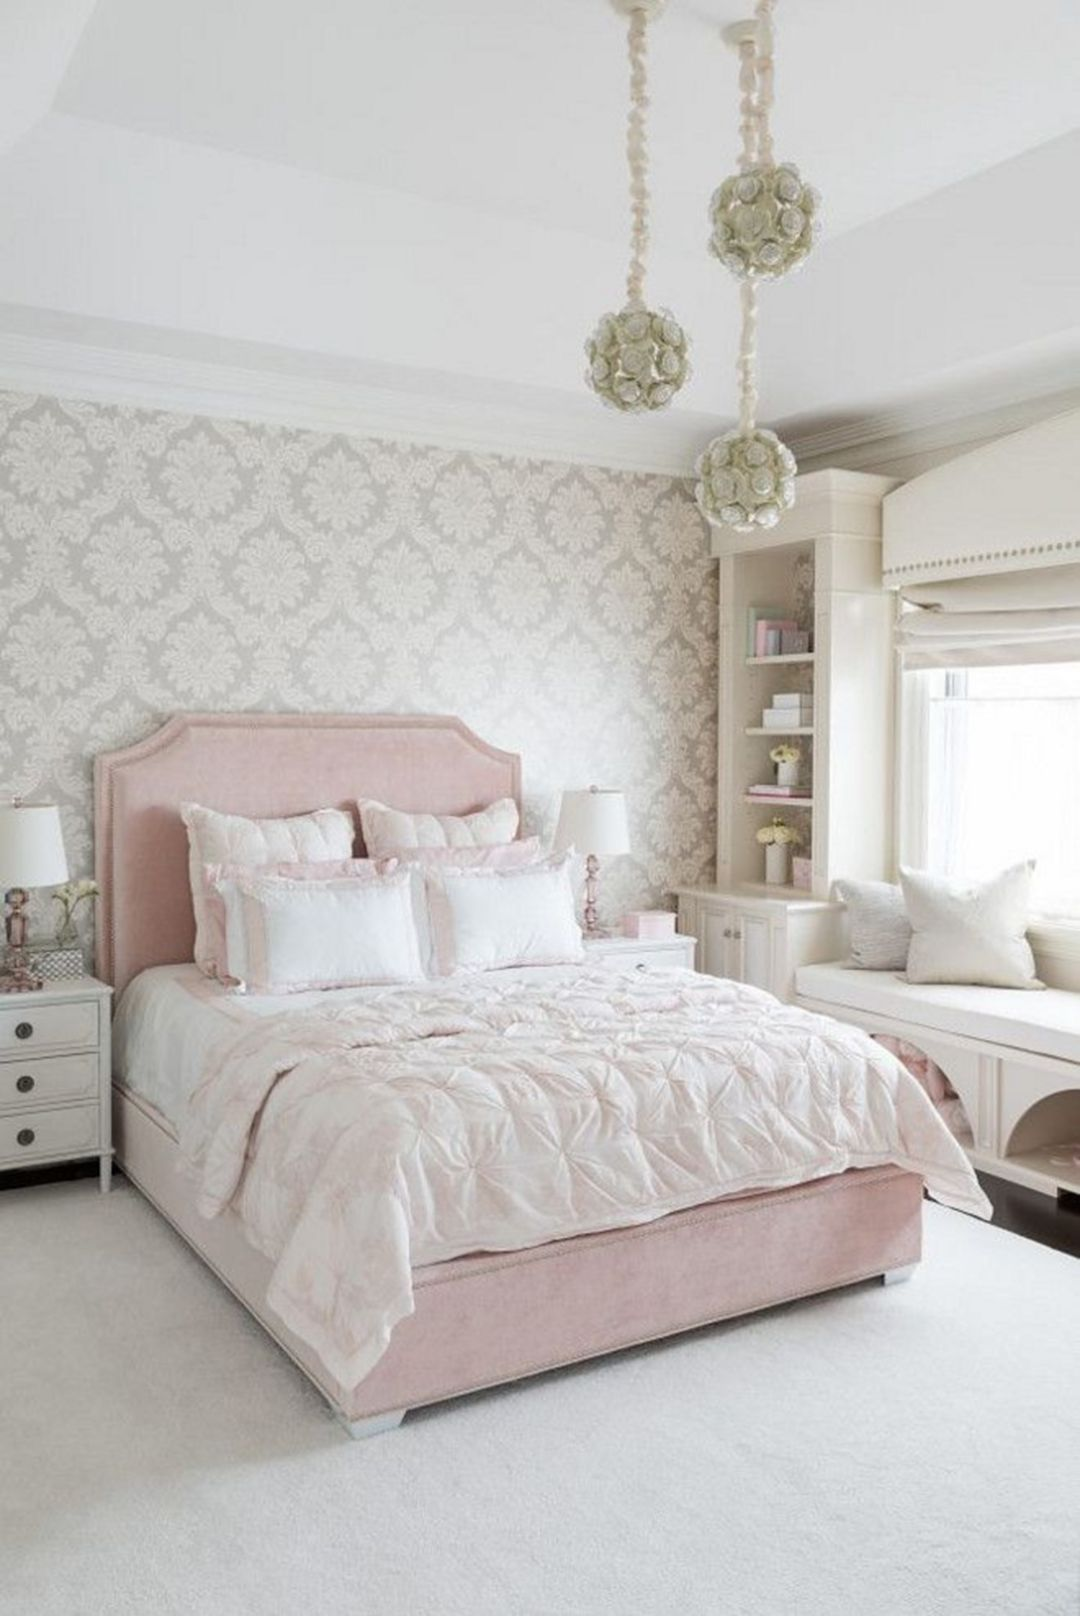 pin on design decor ideas on grey and light pink bedroom decorating ideas id=35163